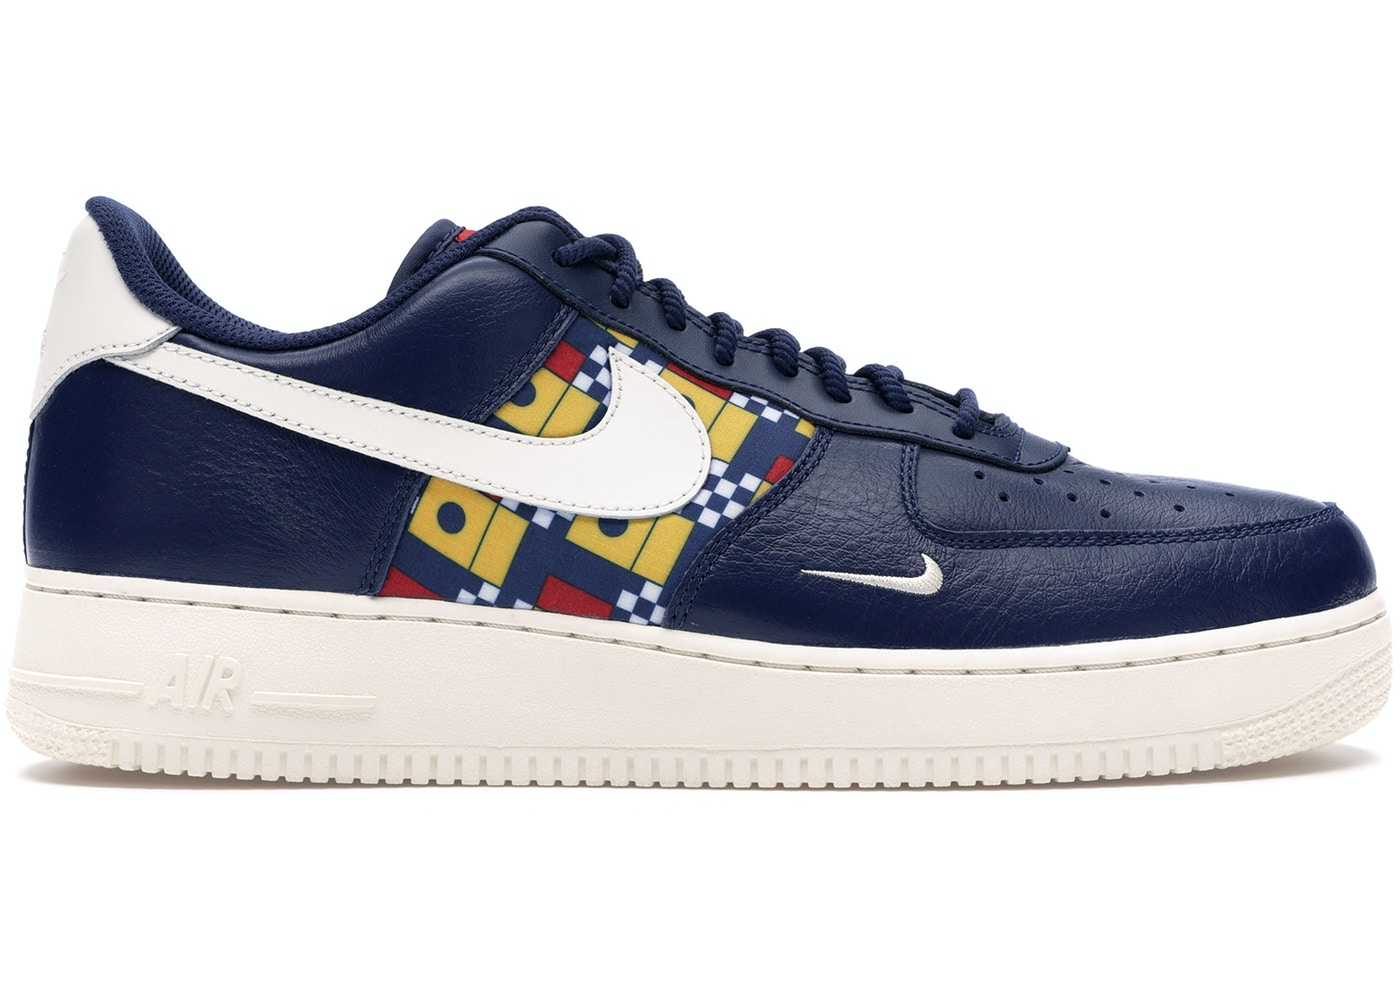 hot sale online cheap prices where to buy Nike Air Force 1 Low Nautical Redux - AR5394-400